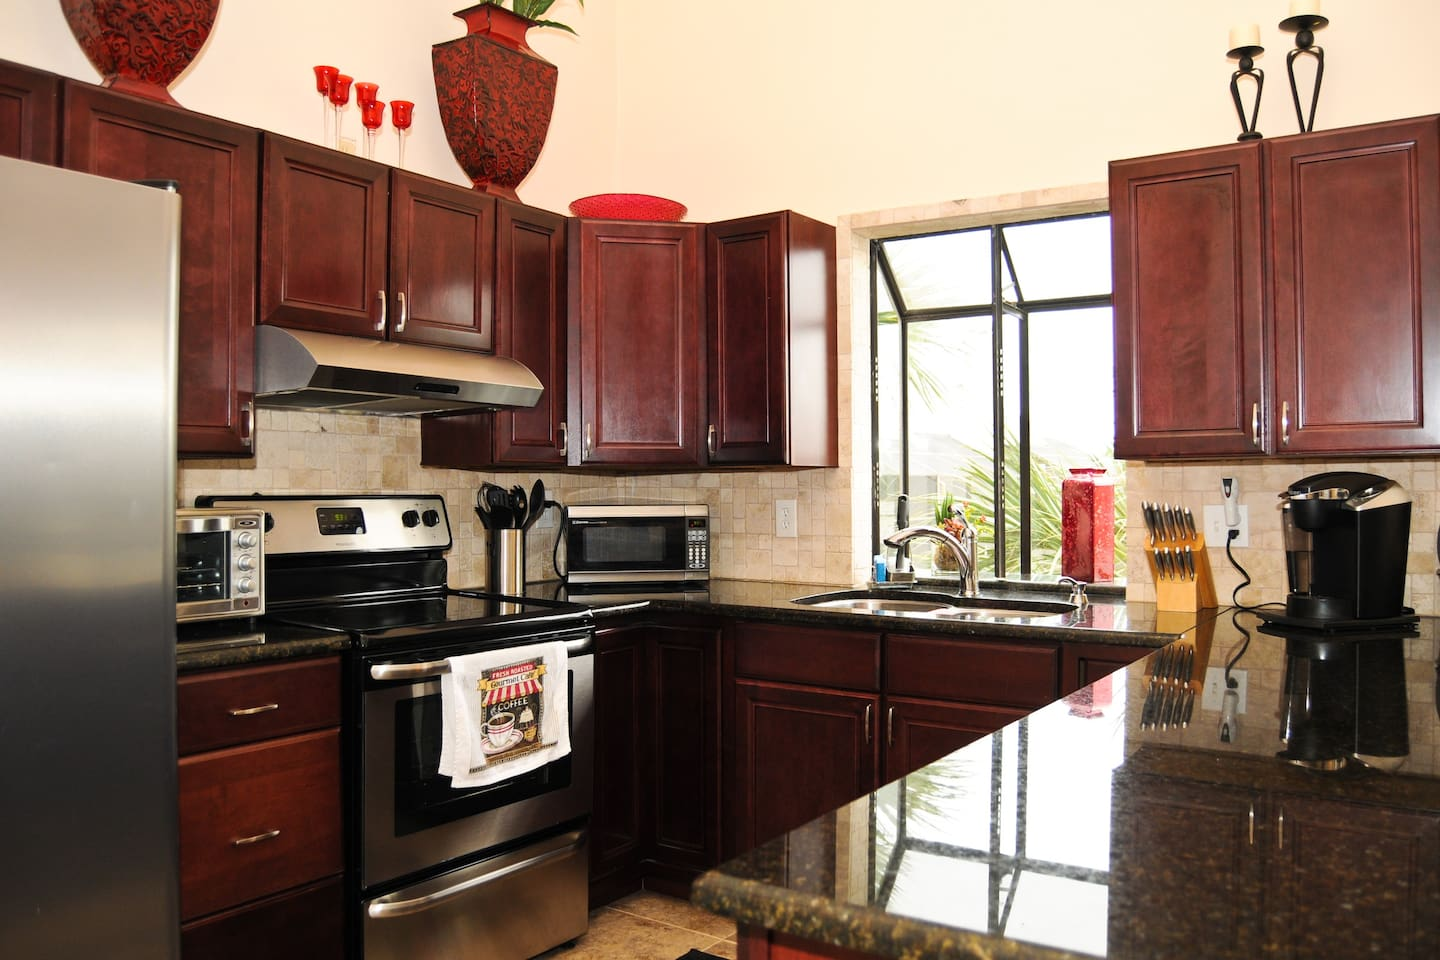 Beautiful kitchen with all stainless steel appliances, granite countertops and fully equipped!